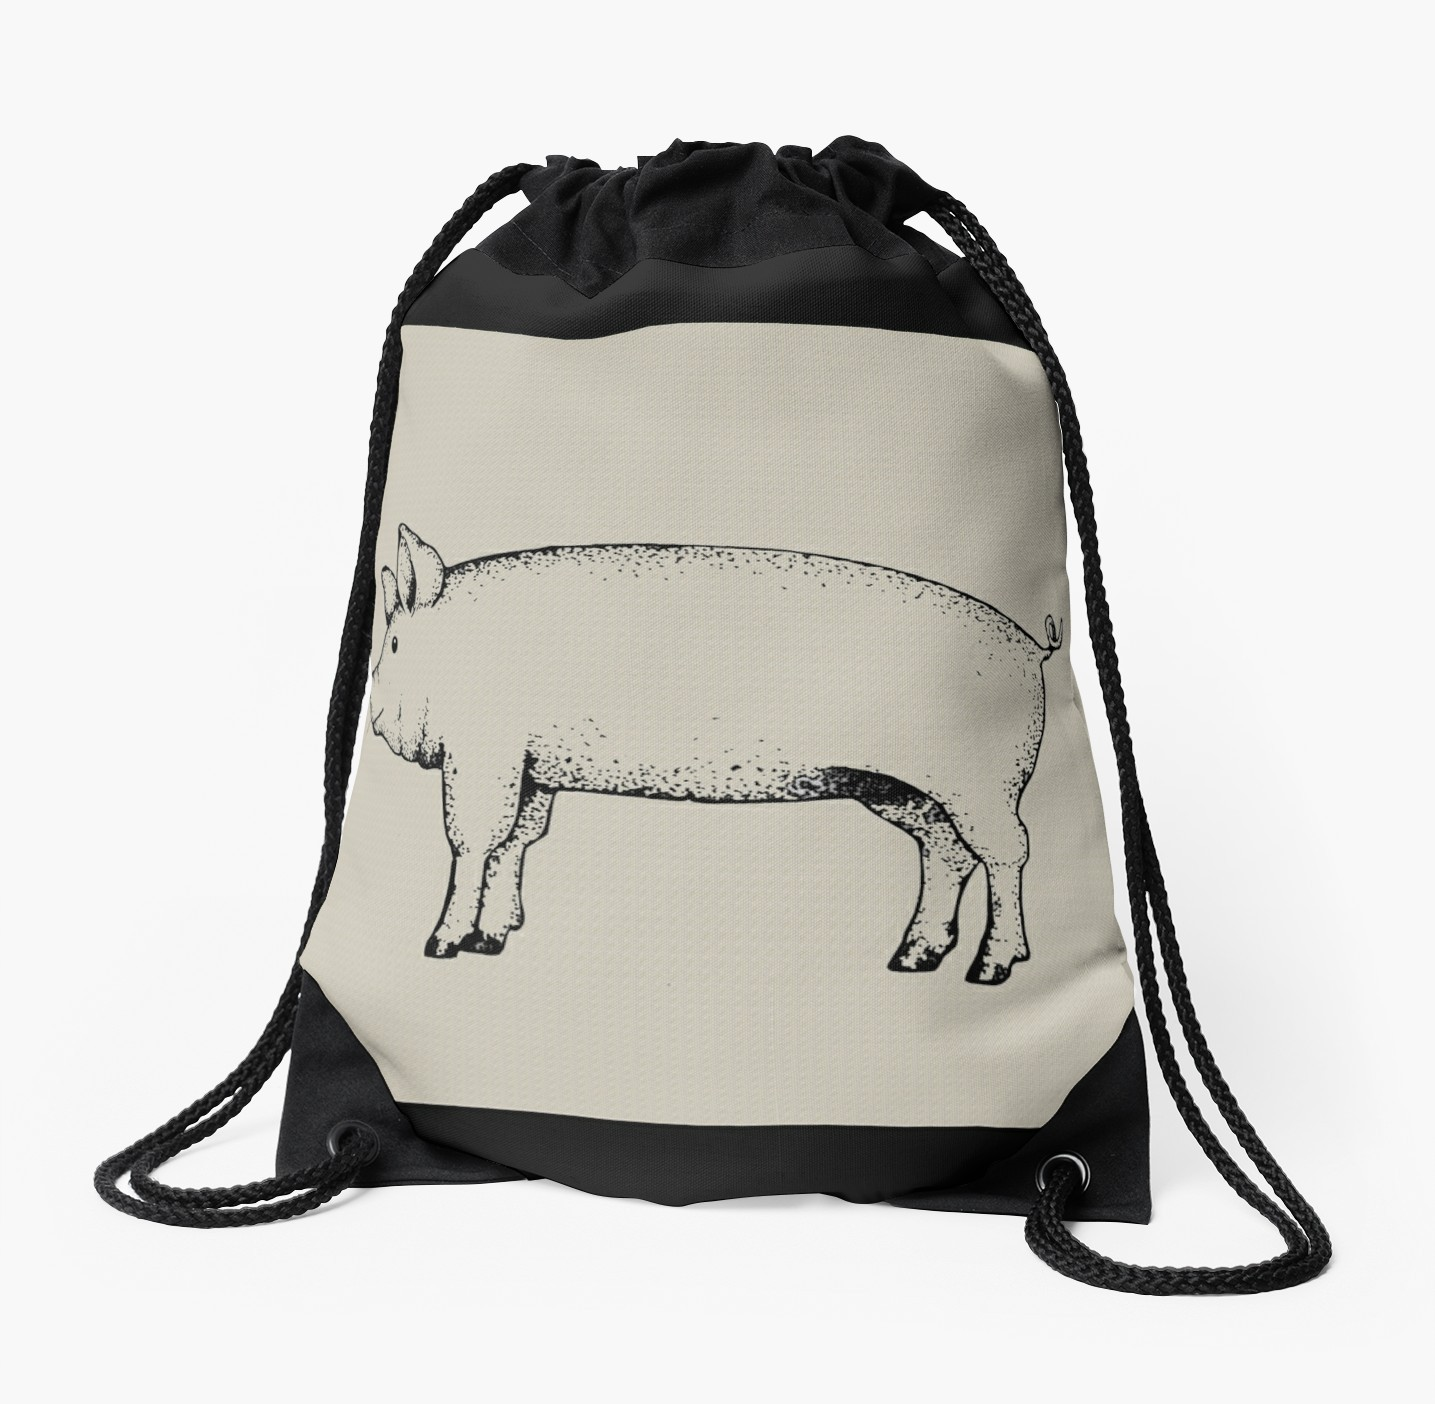 1435x1404 pig outline fresh pig outline art standing pig hog drawing